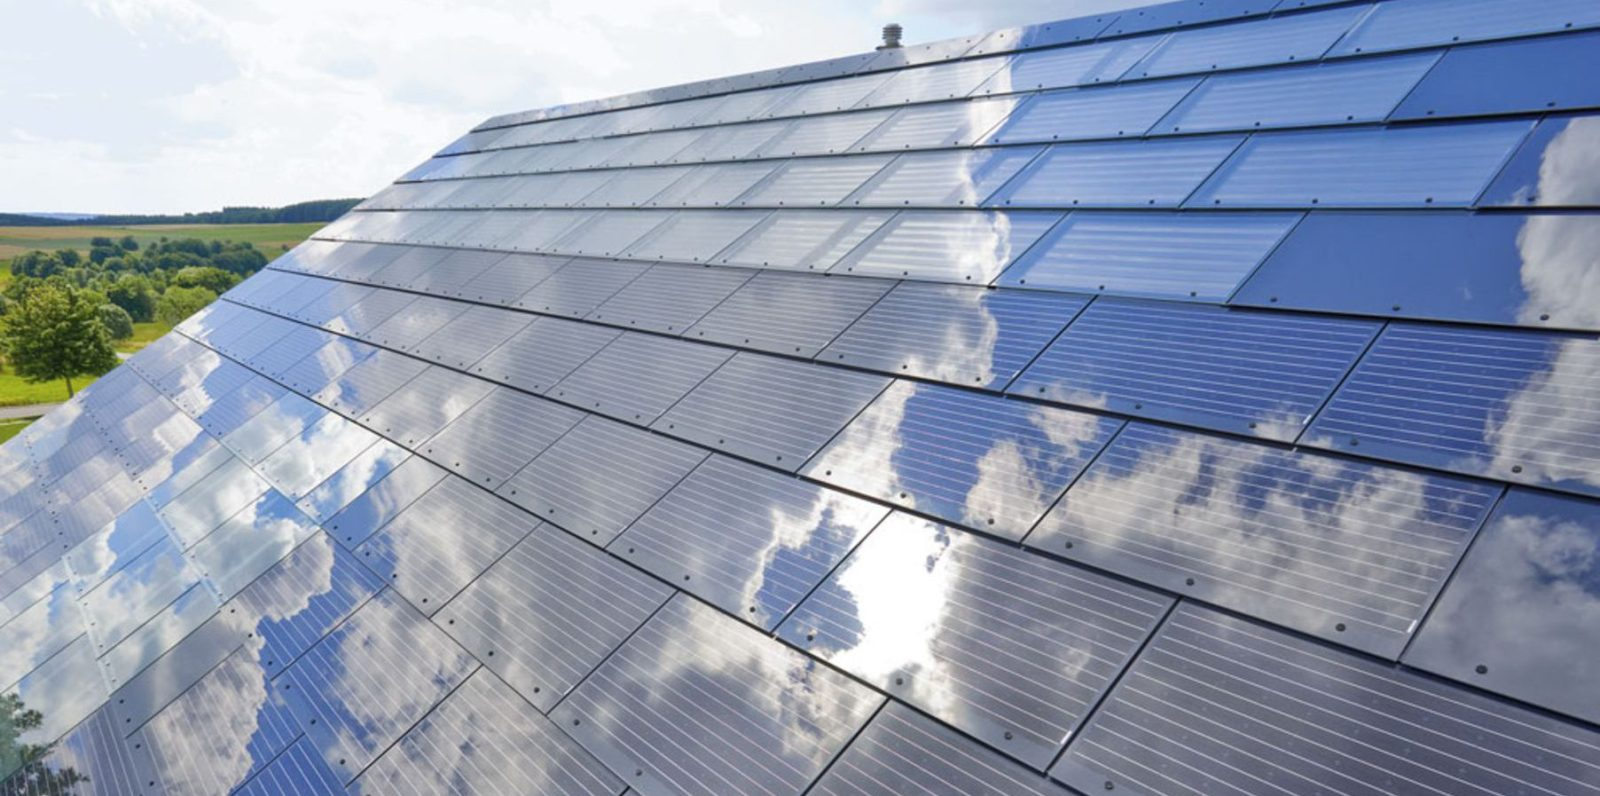 Smart solar roofs. Is this the start of free electricity? | The Thaiger